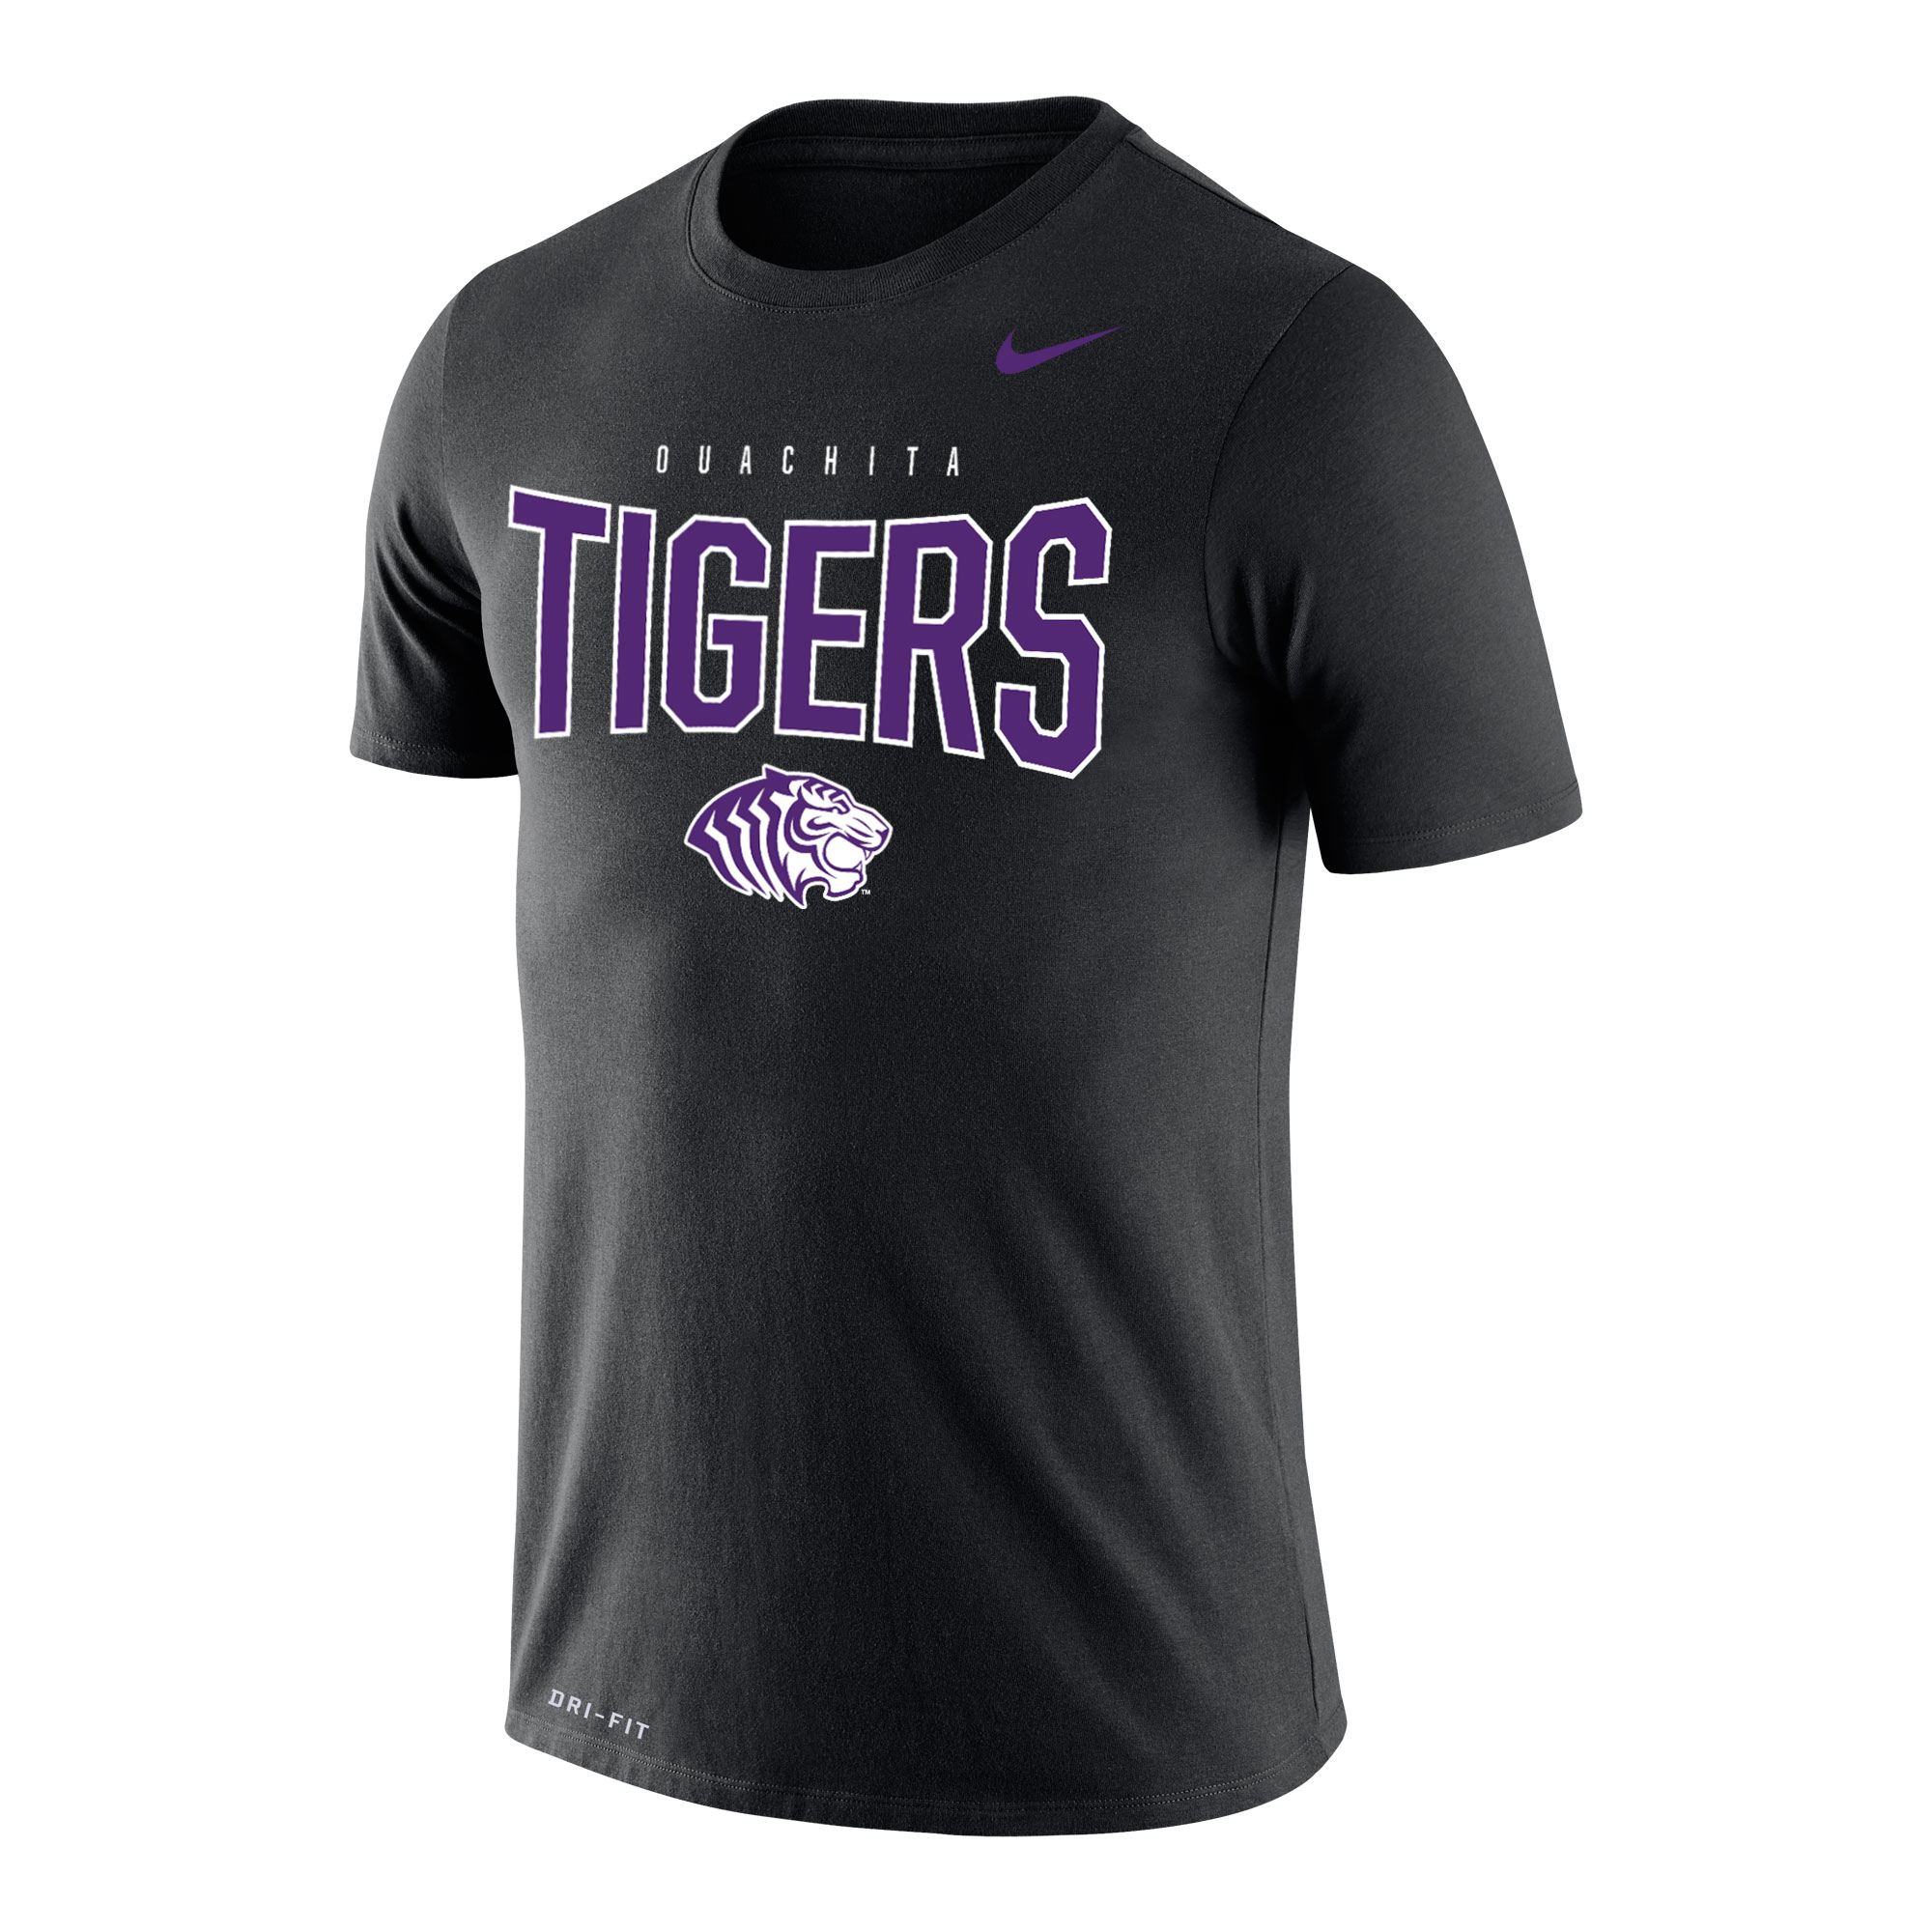 OUACHITA TIGERS NIKE DRI-FIT SS TEE